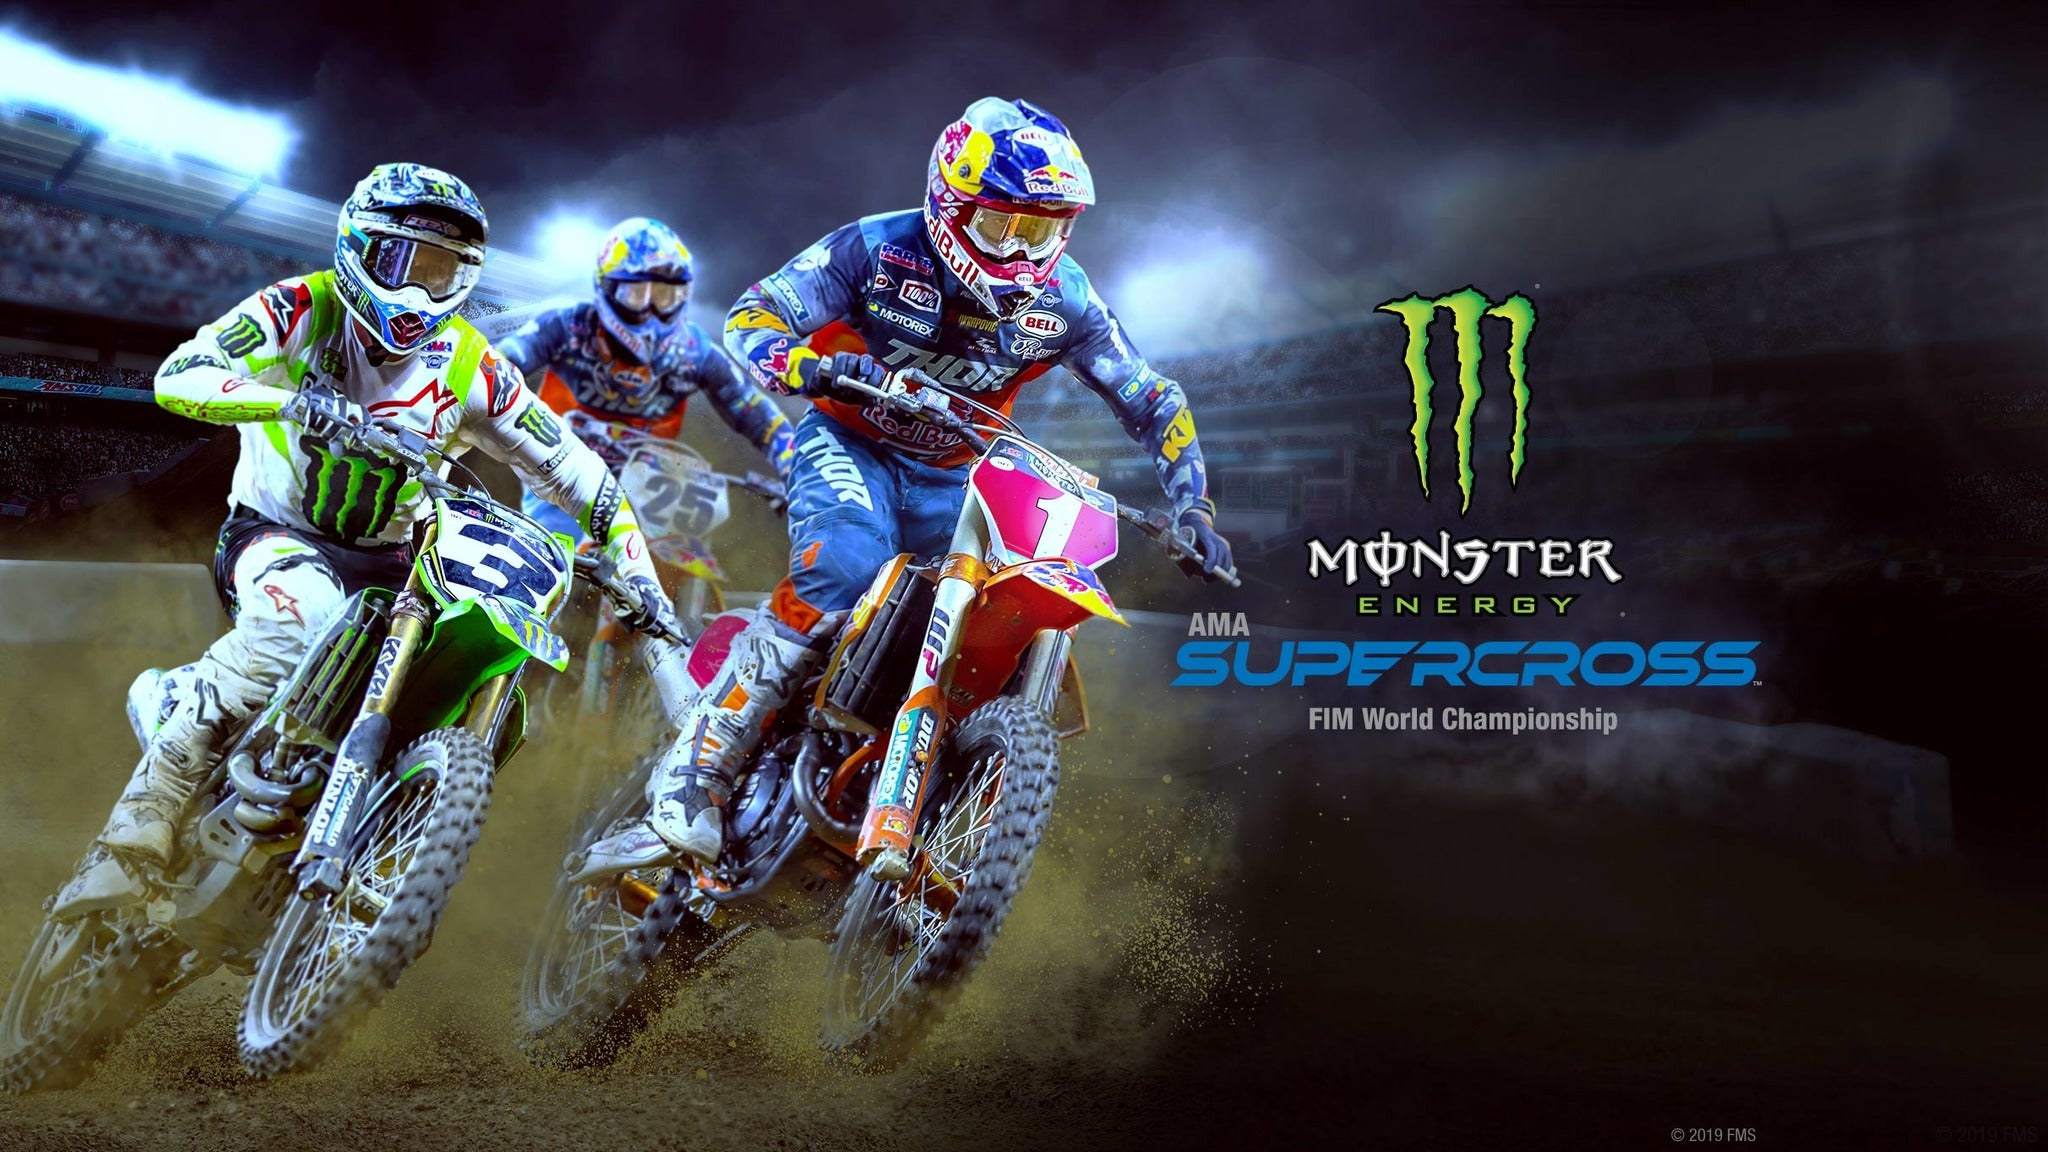 Soon, more Nebraskans should be aware of the unknown beauty of Monster Energy Supercross through the campaign's capstone course.